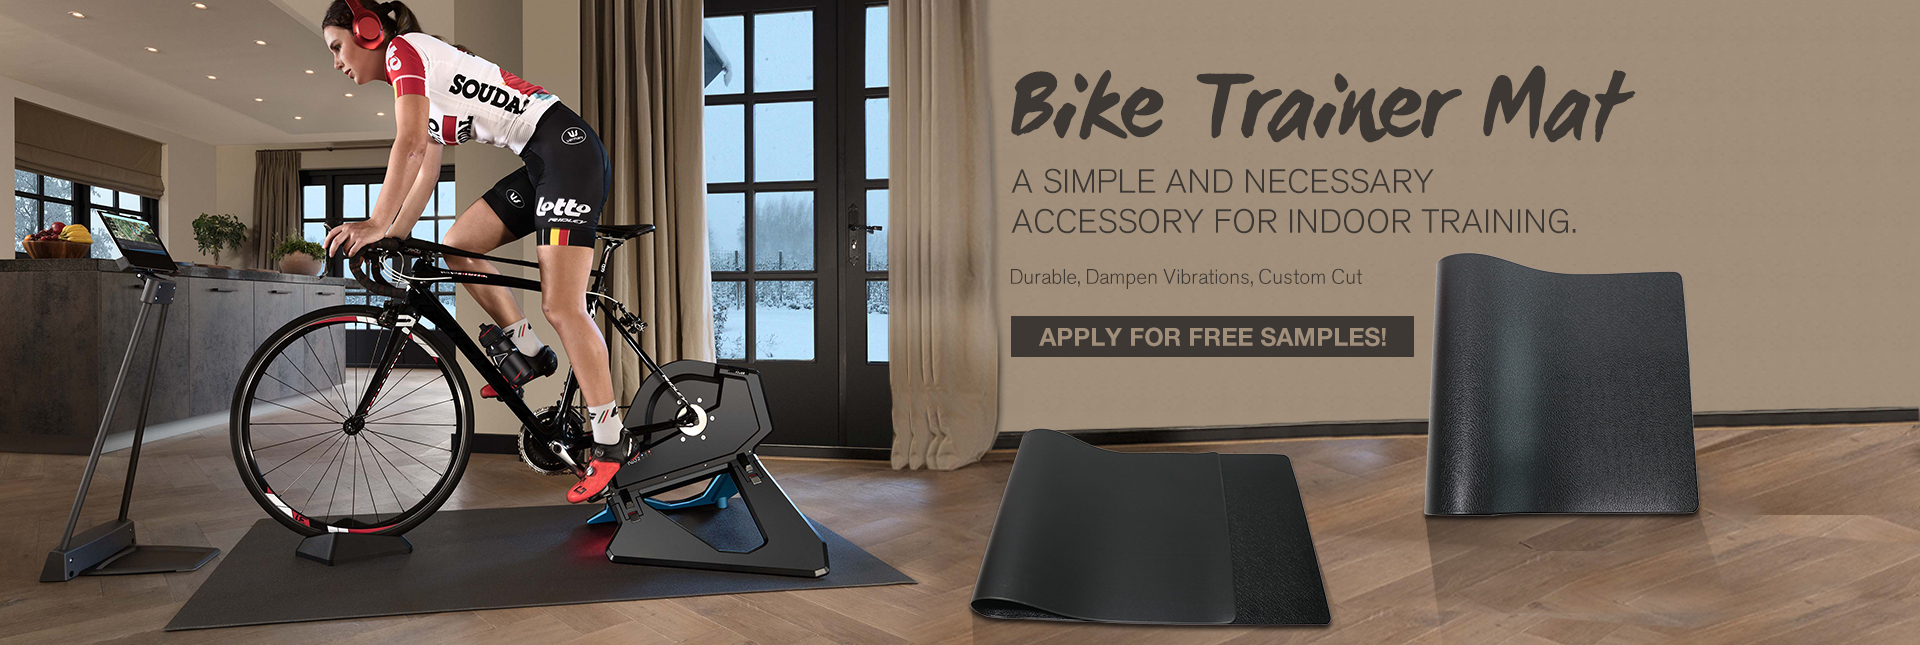 sheepmats-b1-bike-trainer-mat_1031